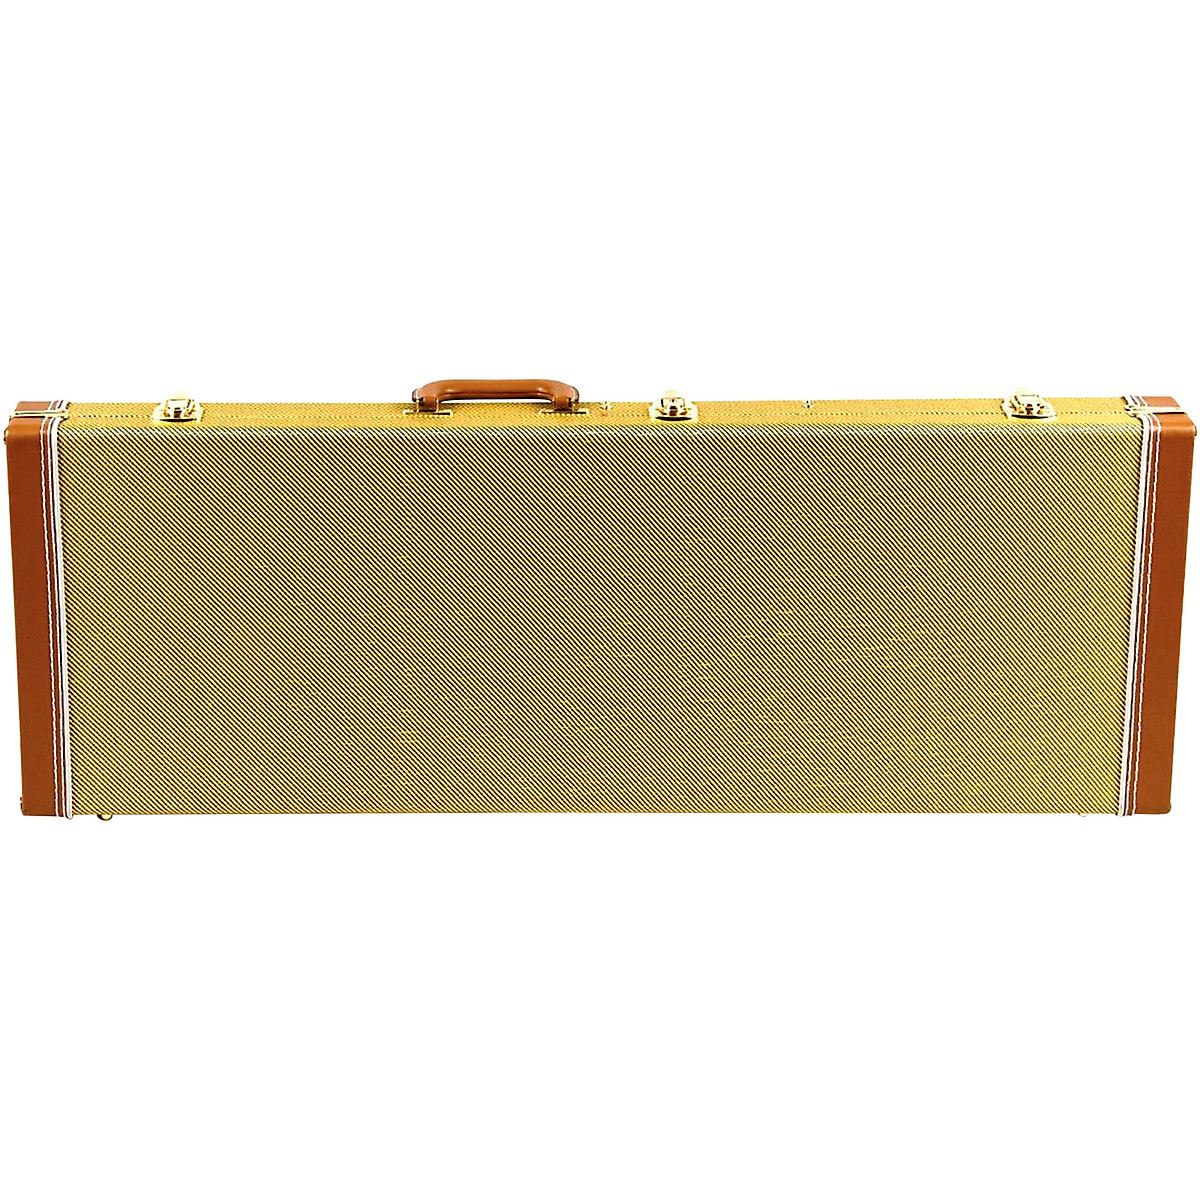 GUARDIAN CG-035-E Tweed Hardshell Case for Electric Guitar